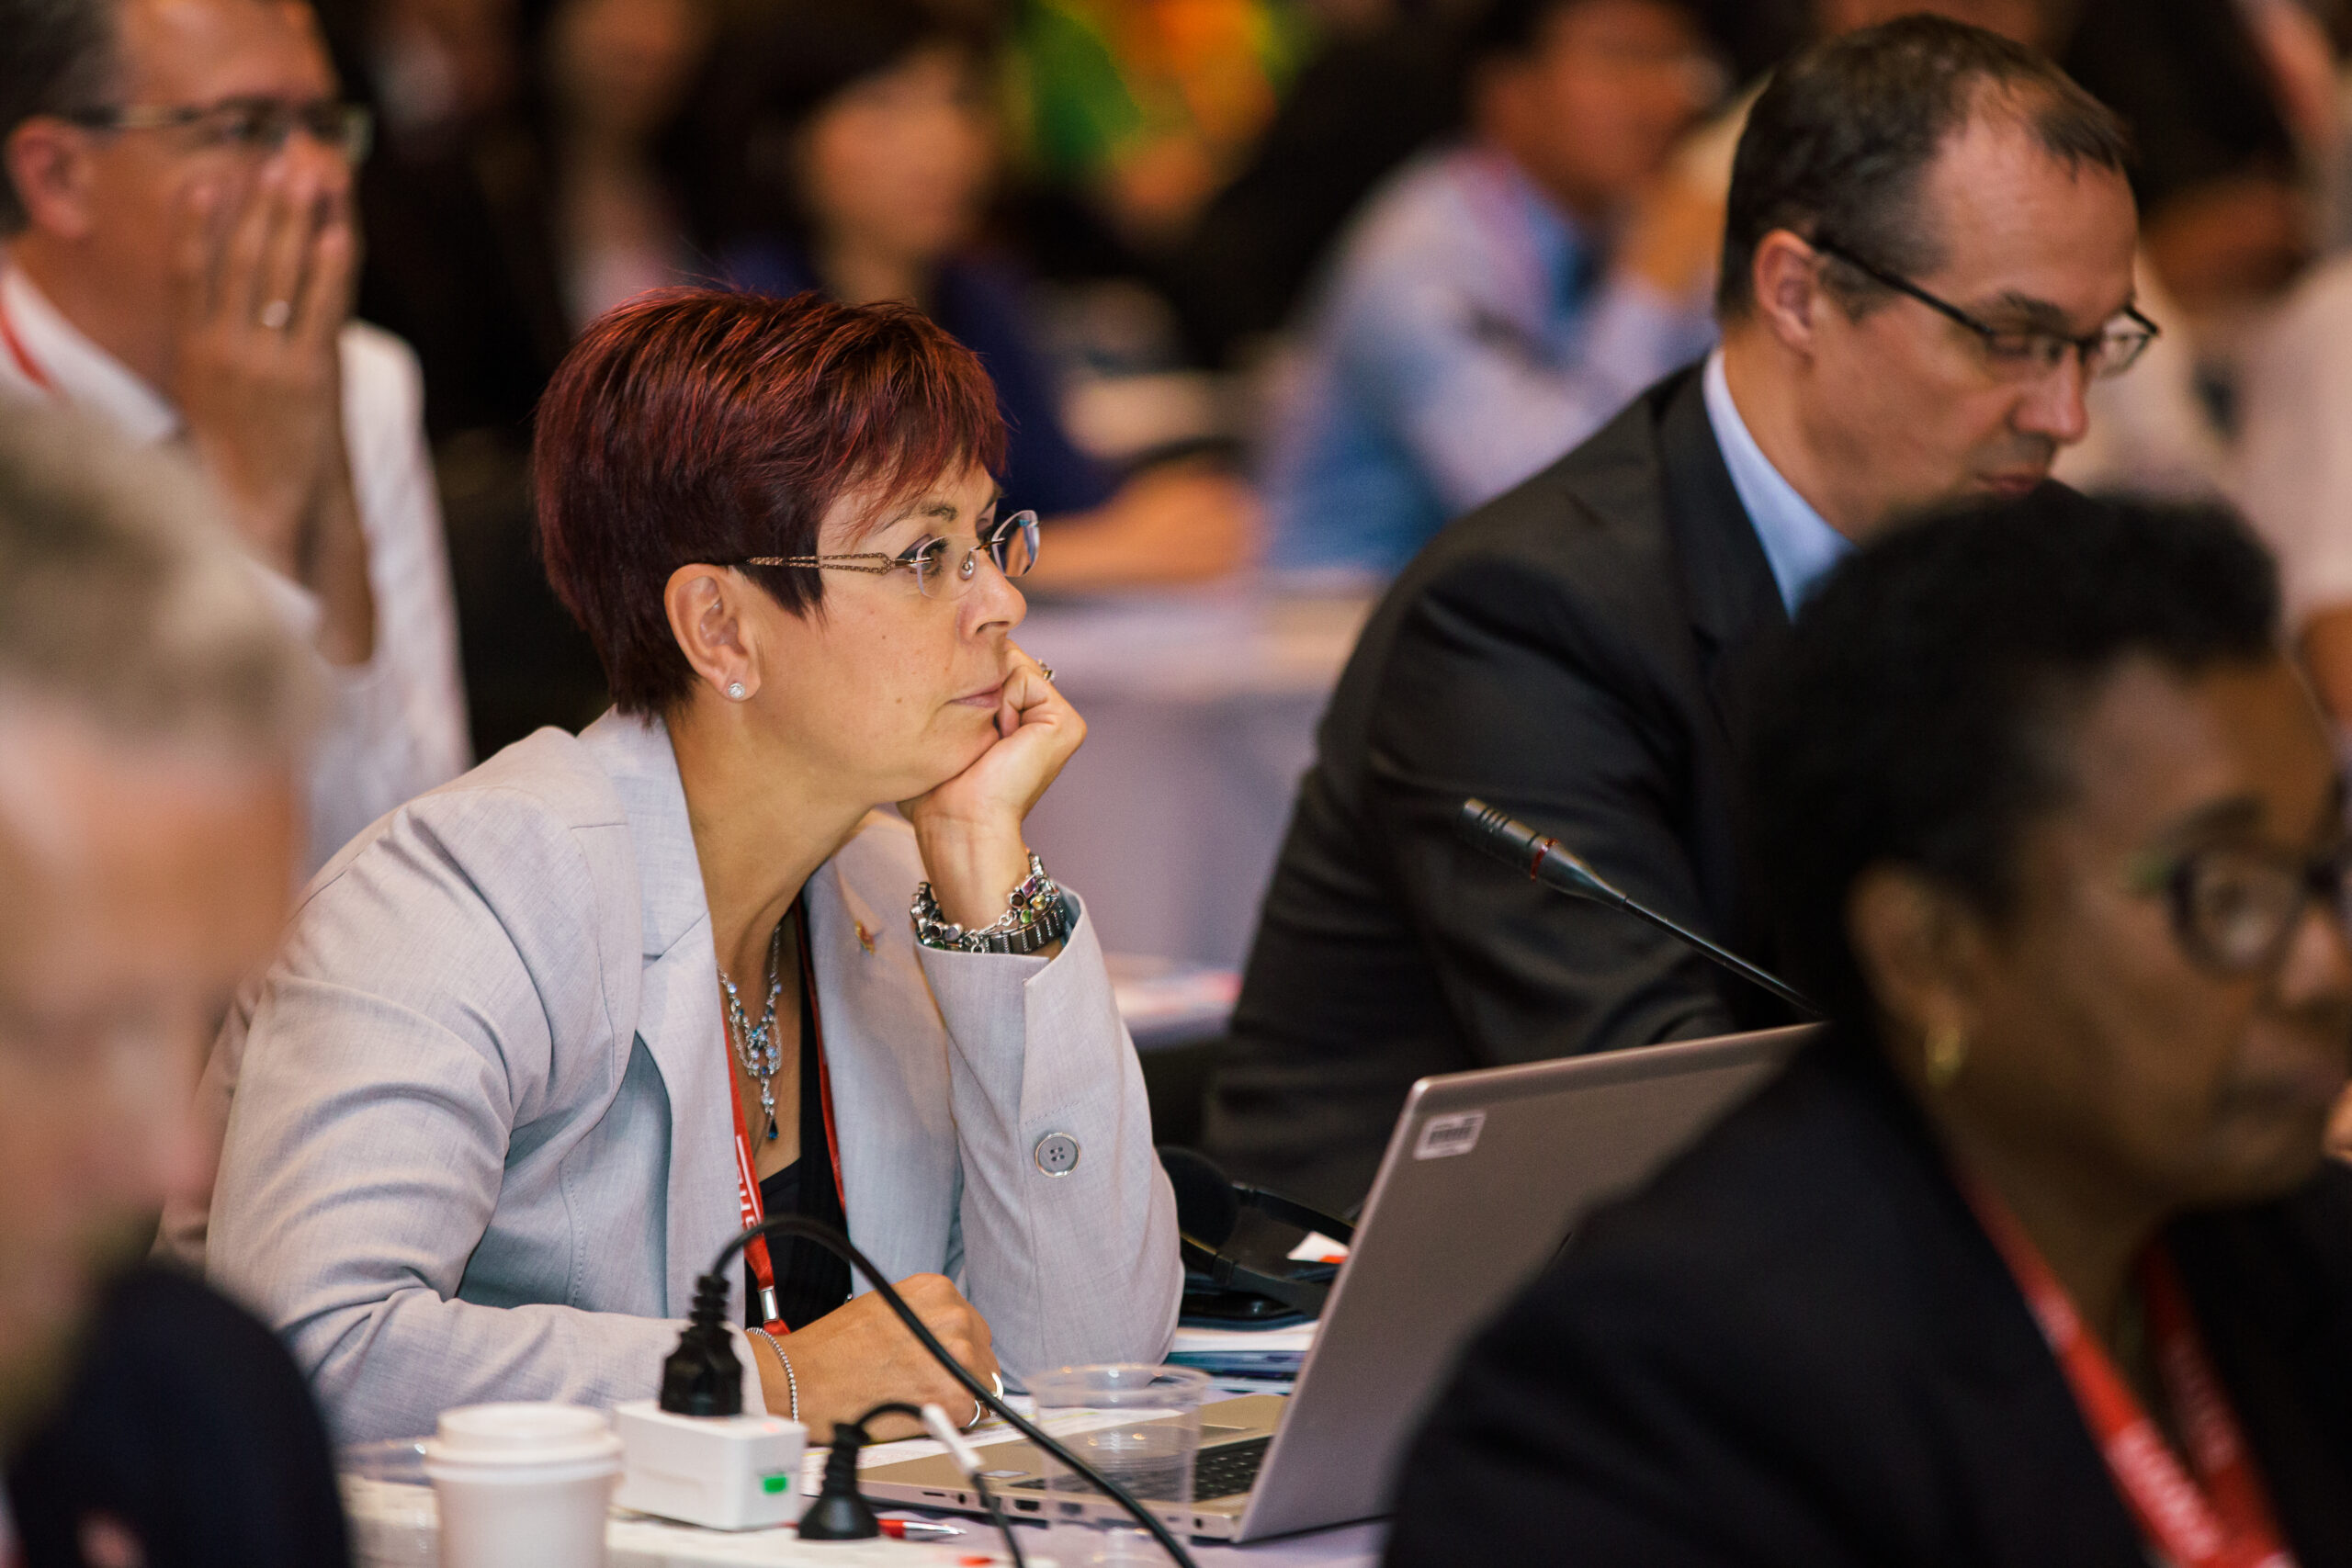 Representing Canada's interests on the ISO Council